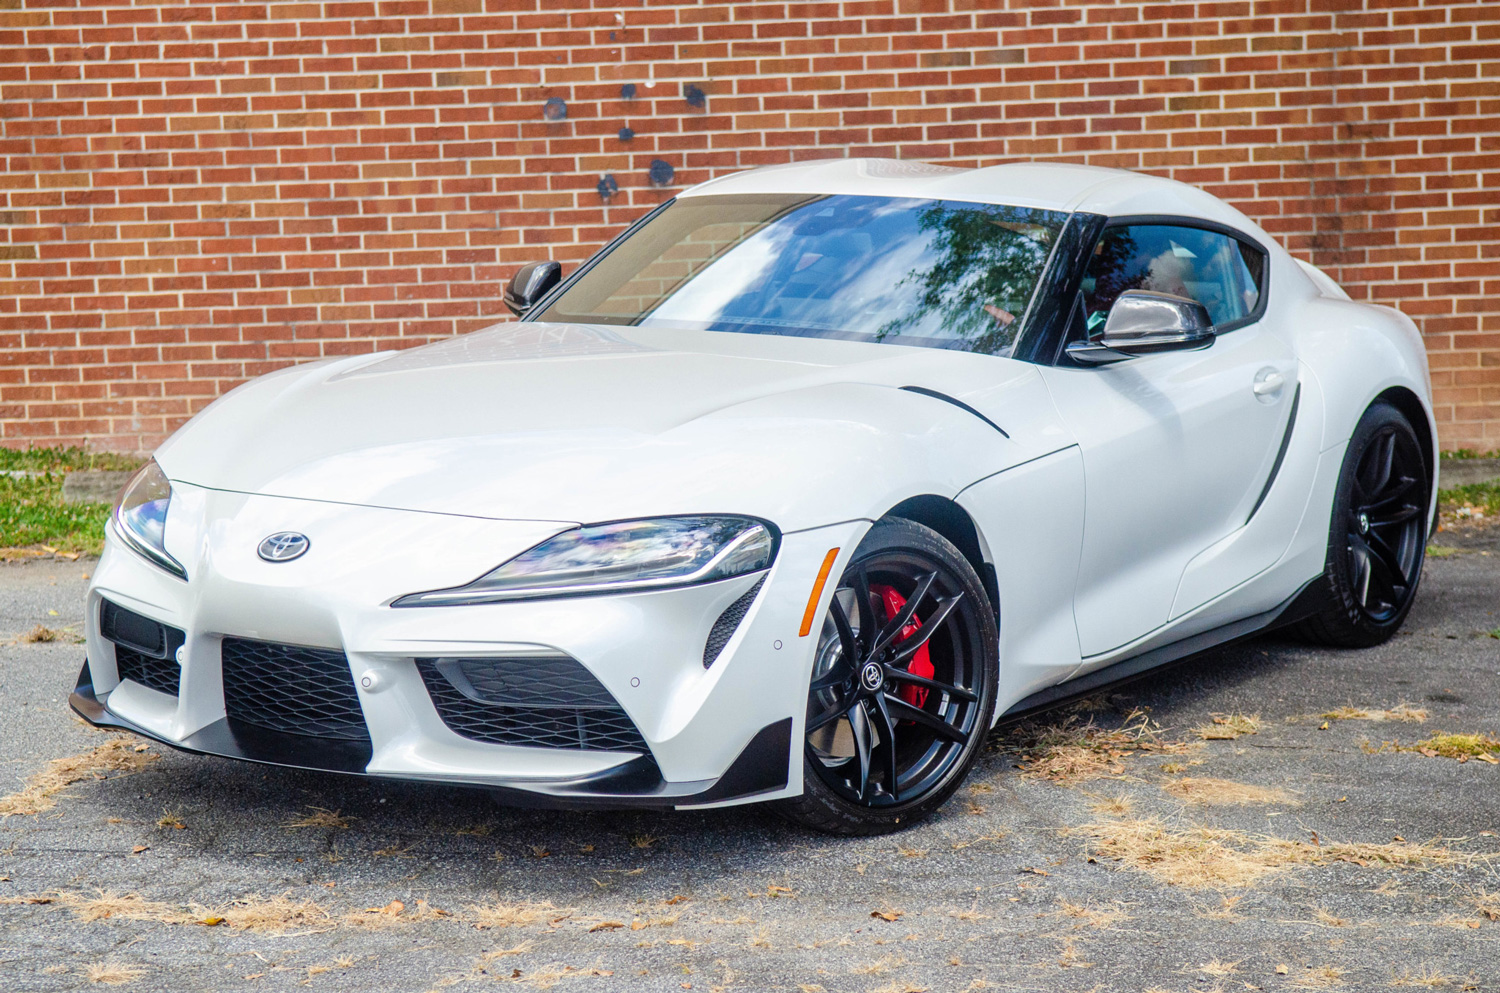 Launch Edition 2020 Supra sells on Bring a Trailer for… totally reasonable price